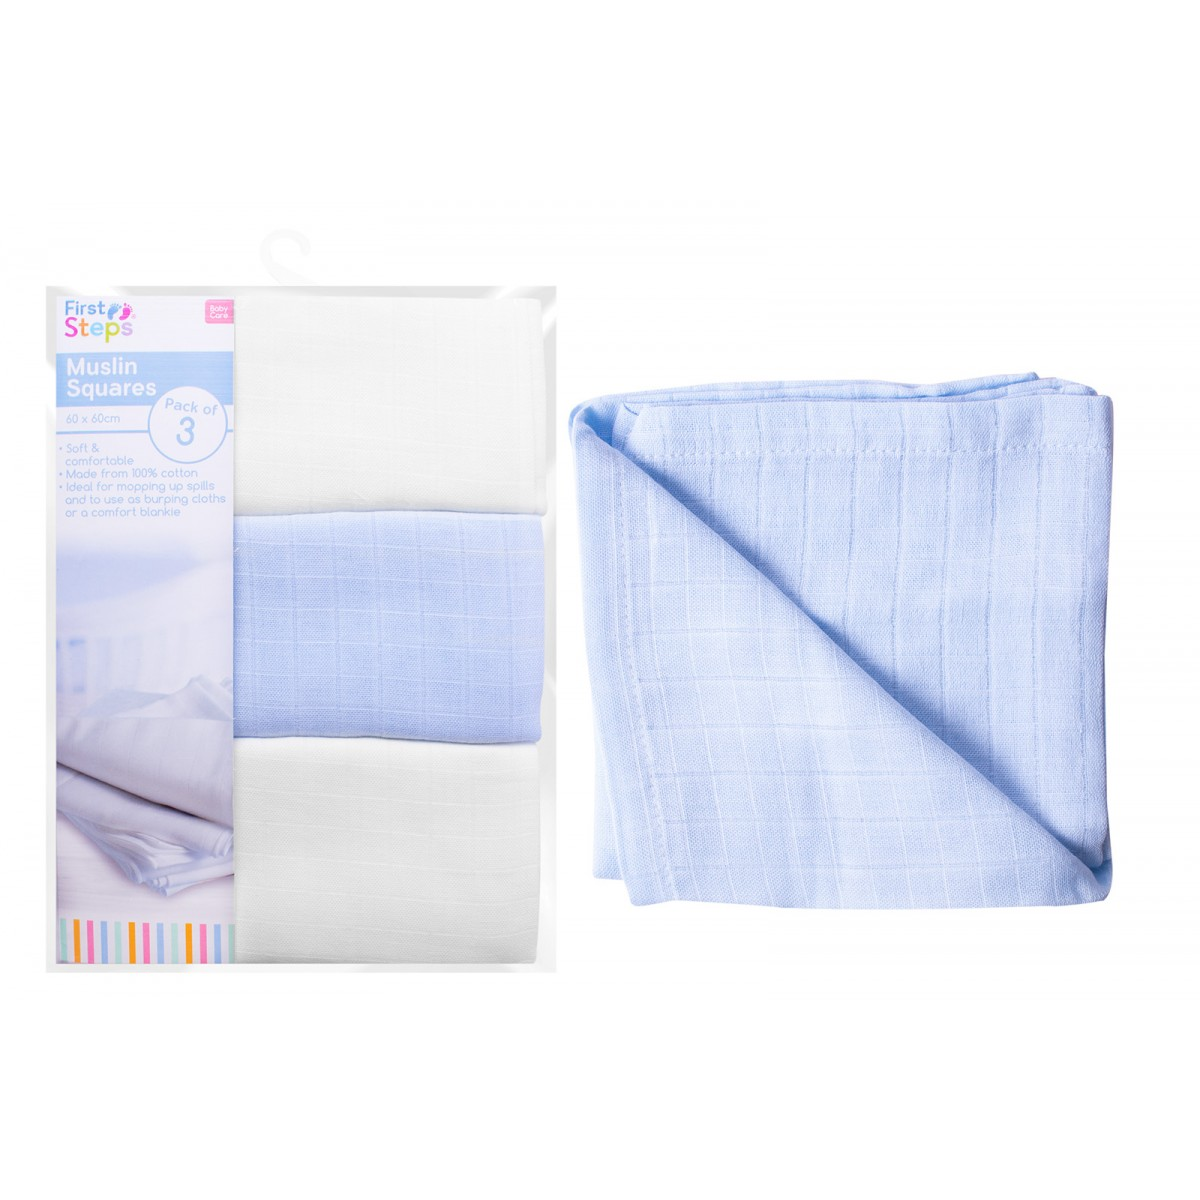 First Steps Pack of 3 Muslin Squares for Baby Soft /& Comfortable 100/% Cotton 60x60cm